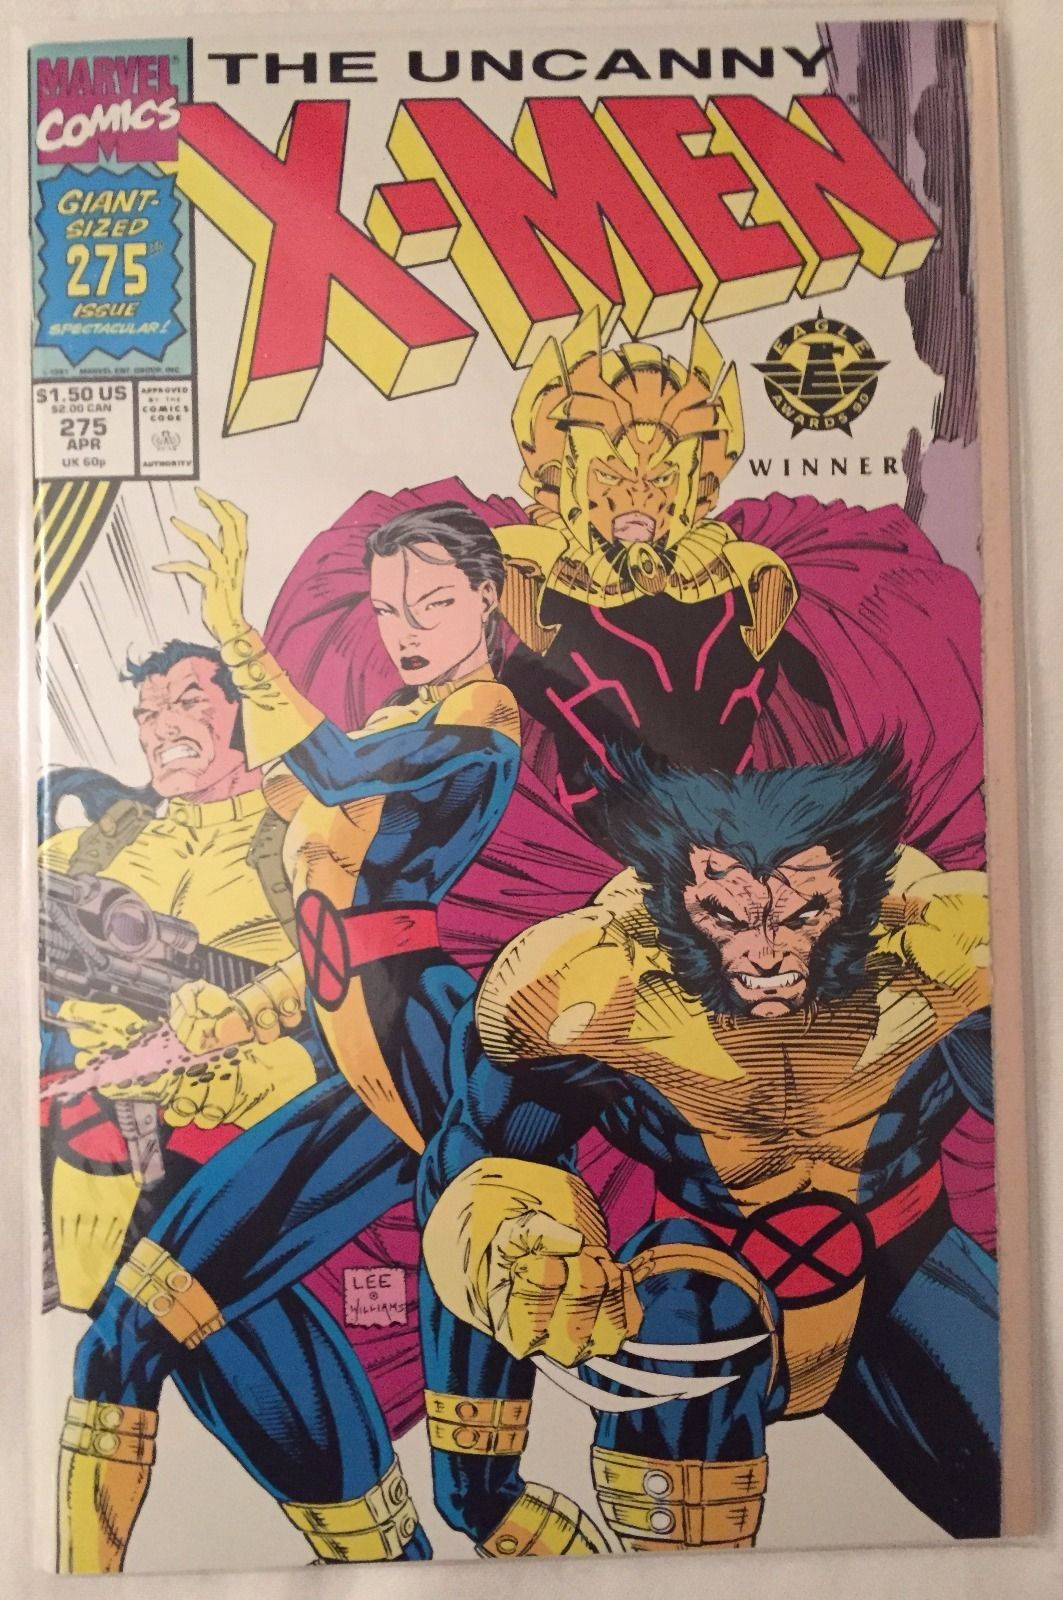 Giant Sized Issue NEW Uncanny X-Men #275